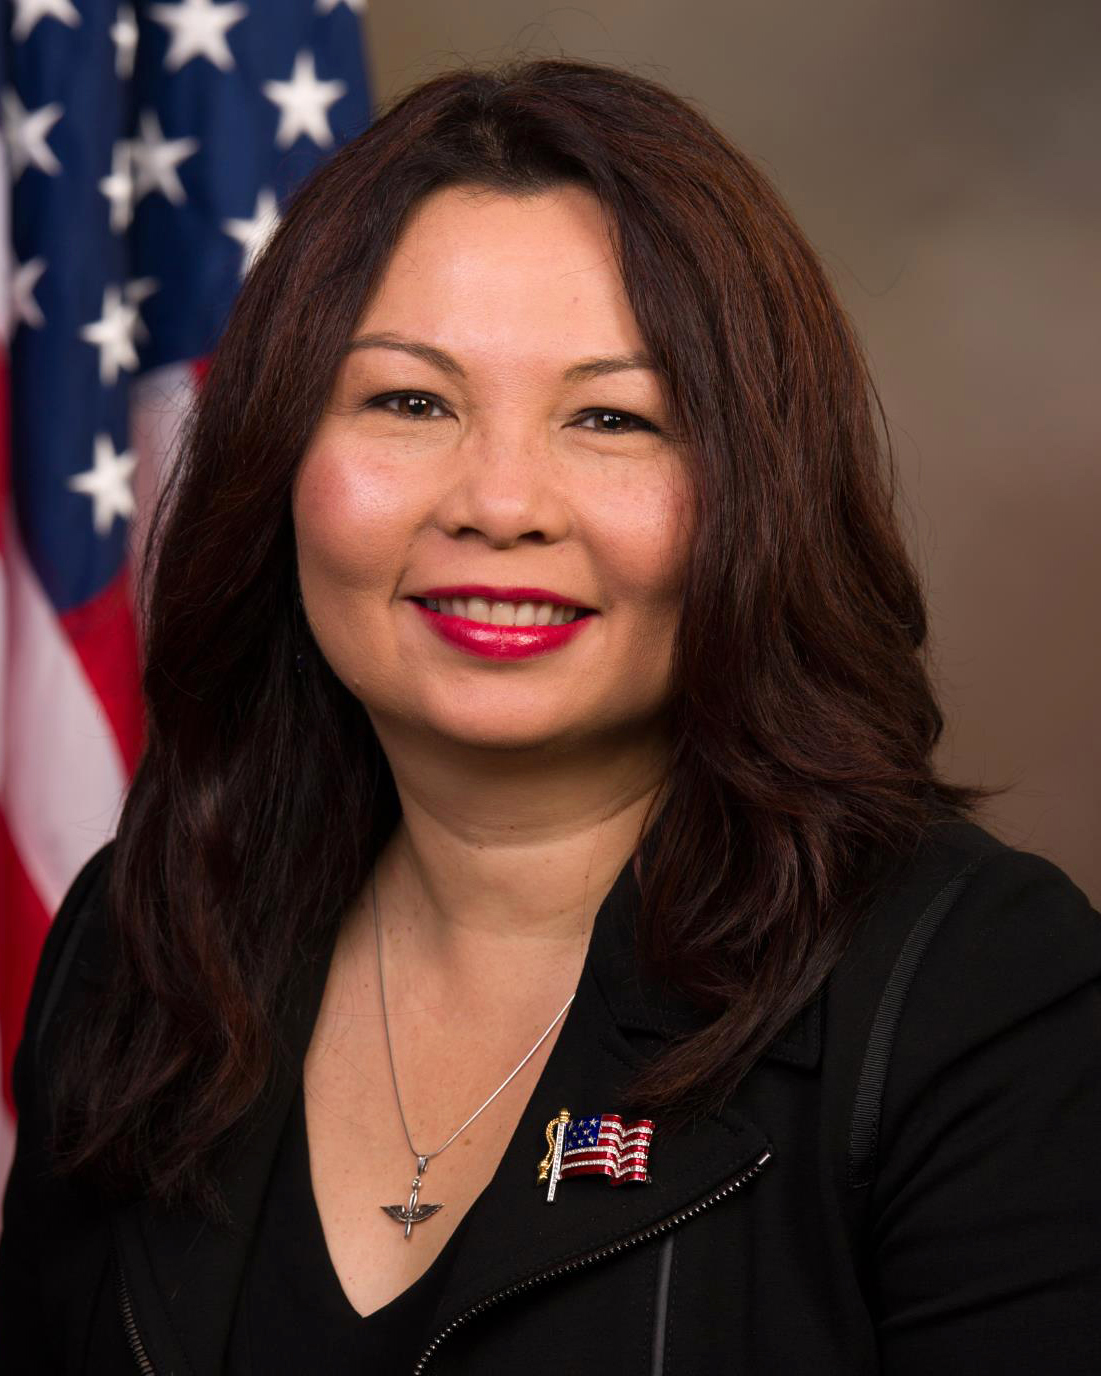 tammy_duckworth,_official_portrait,_113th_congress_(cropped)